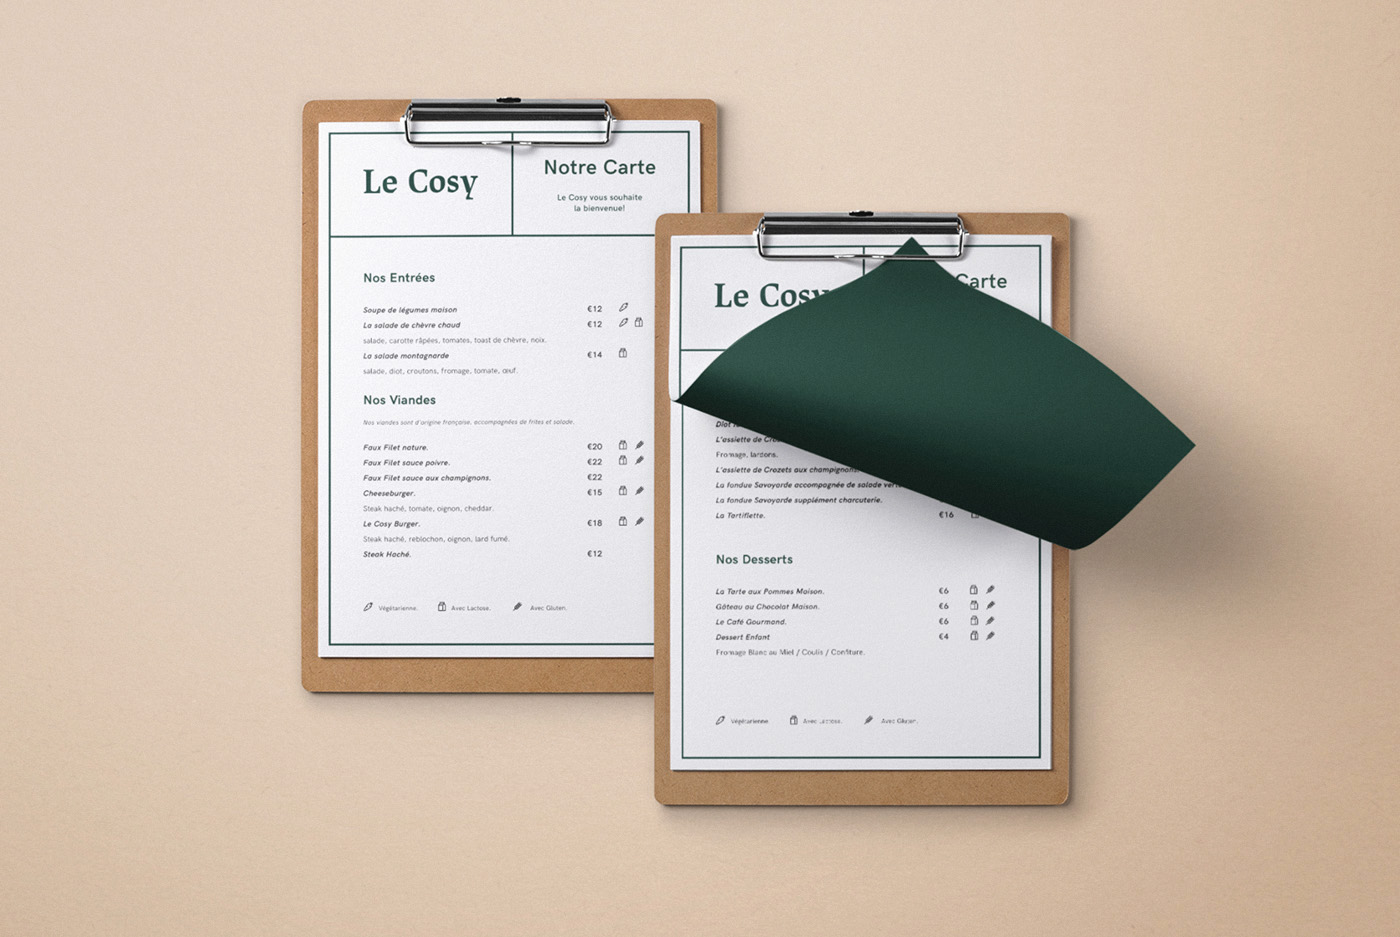 Le Cosy Bar Diseño grafico restaurante menu